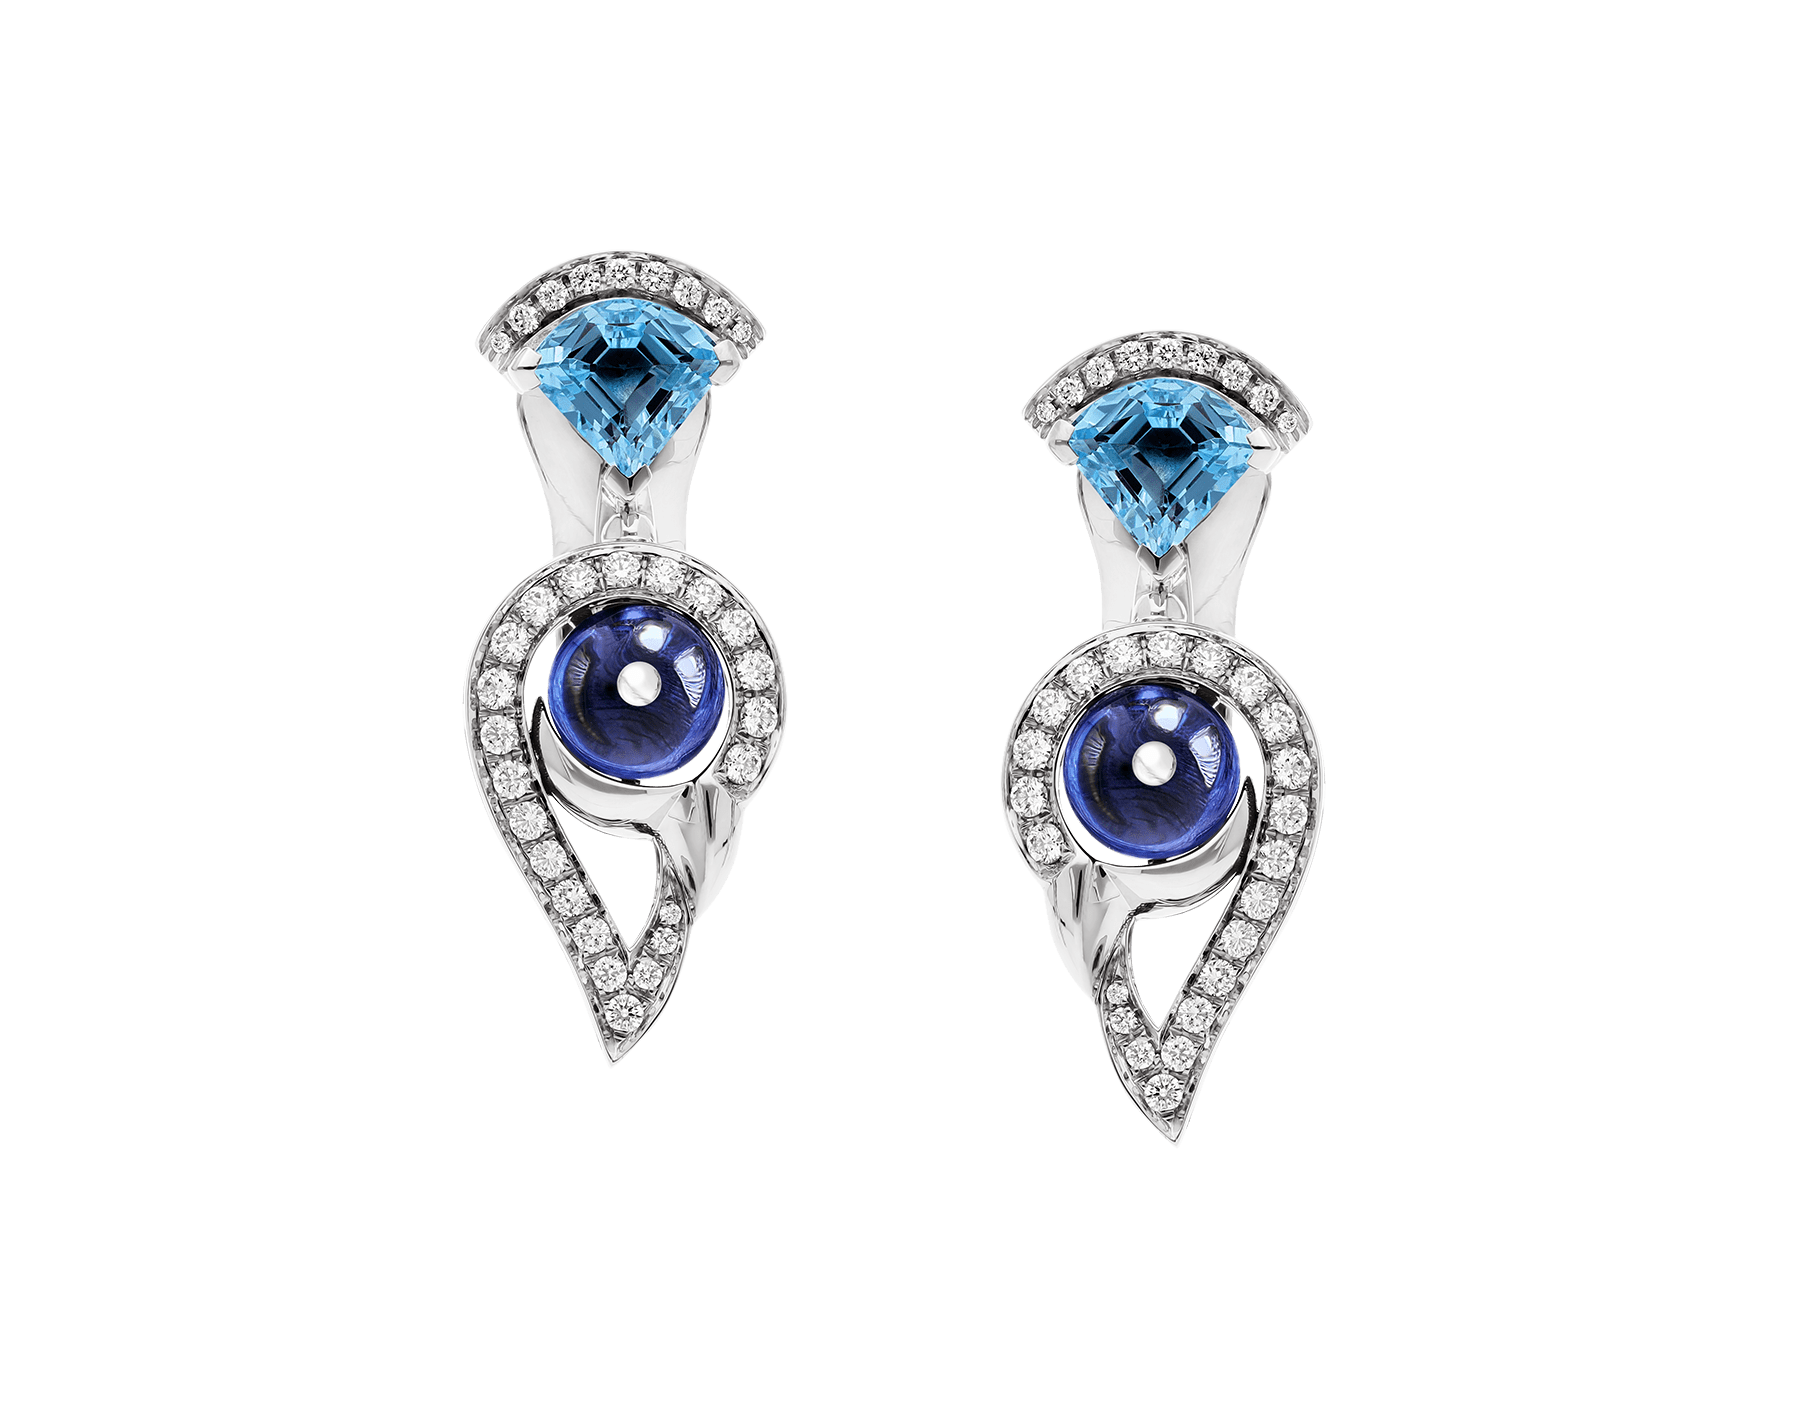 DIVAS' DREAM 18 kt white gold earrings set with coloured gemstones and pavé diamonds 355628 image 1